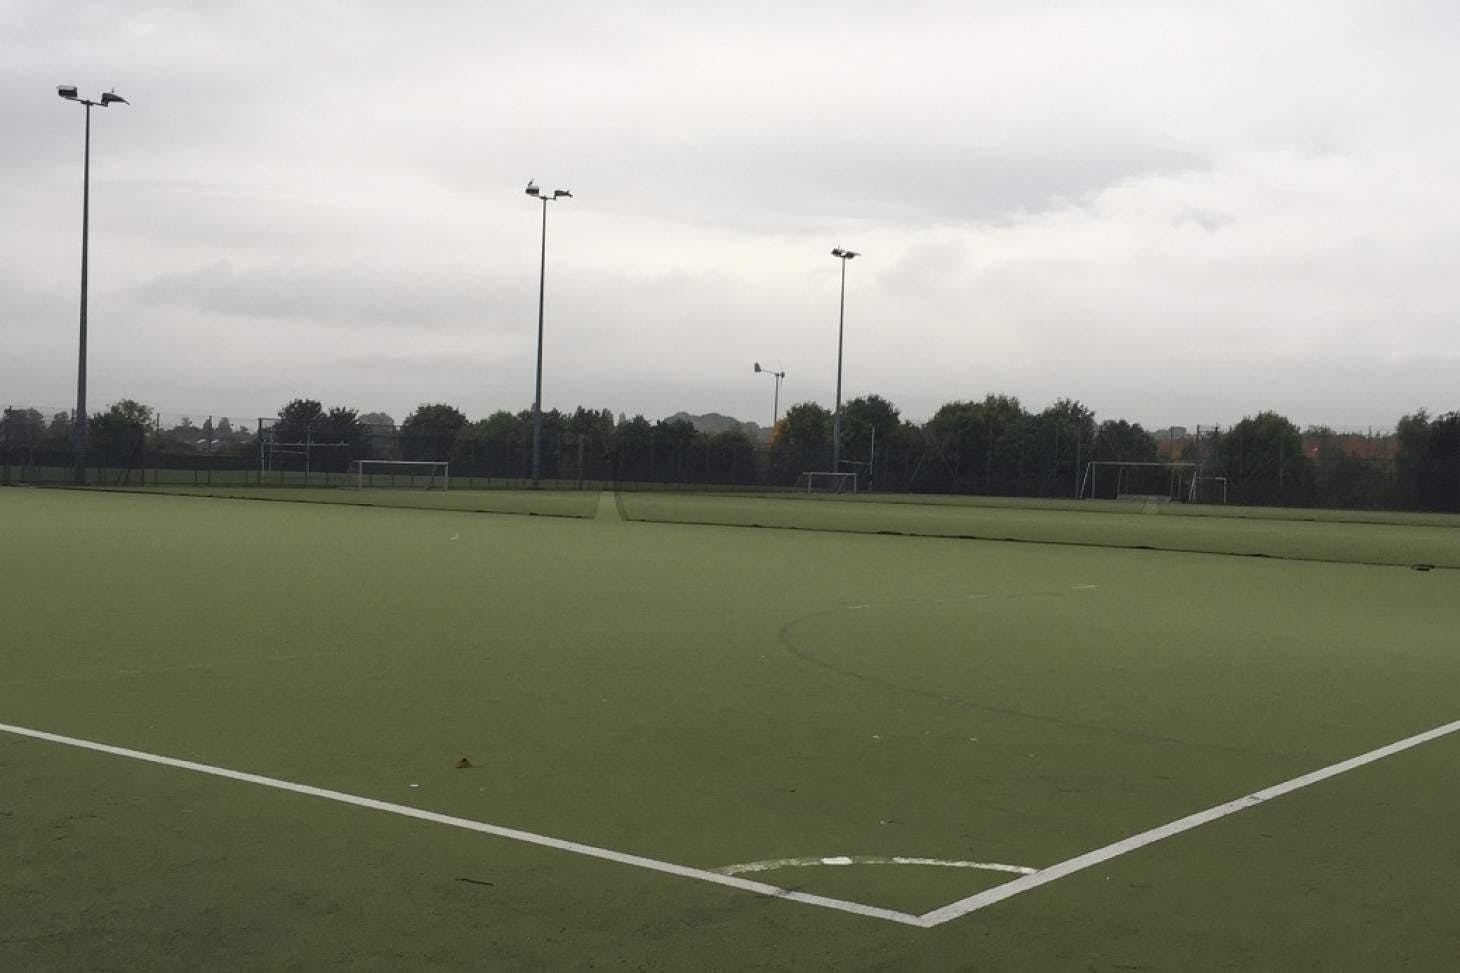 National Church of England Academy Outdoor | Astroturf hockey pitch